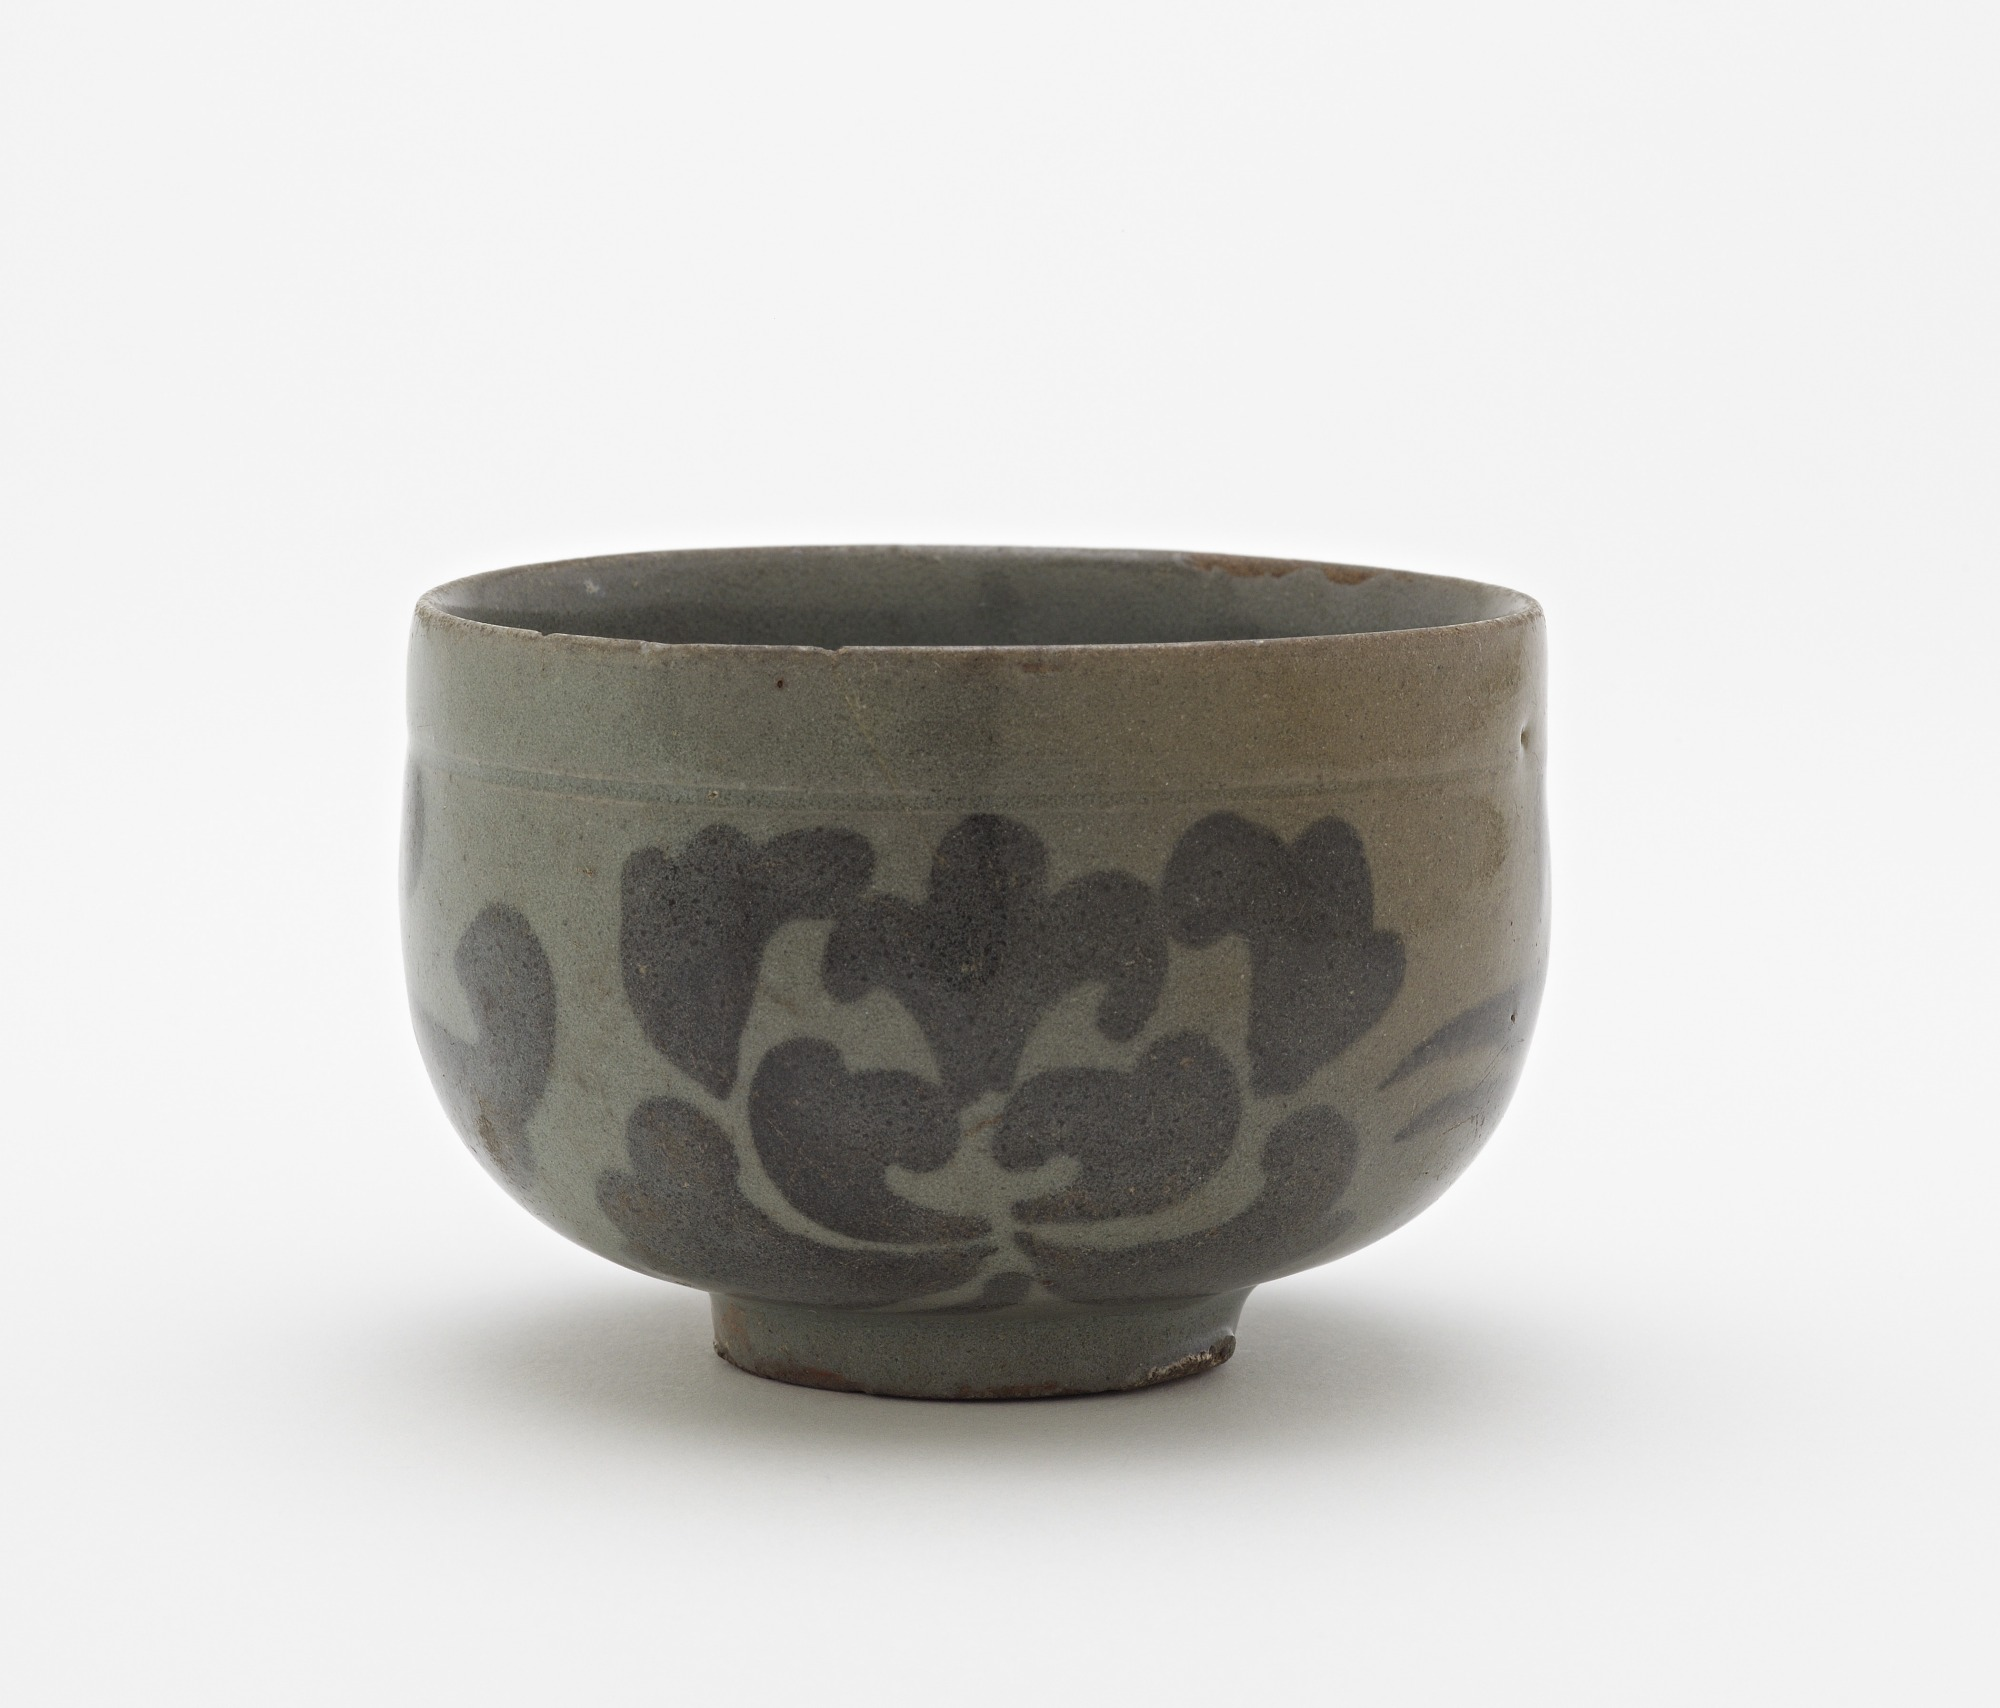 Cup with design of peony blossoms